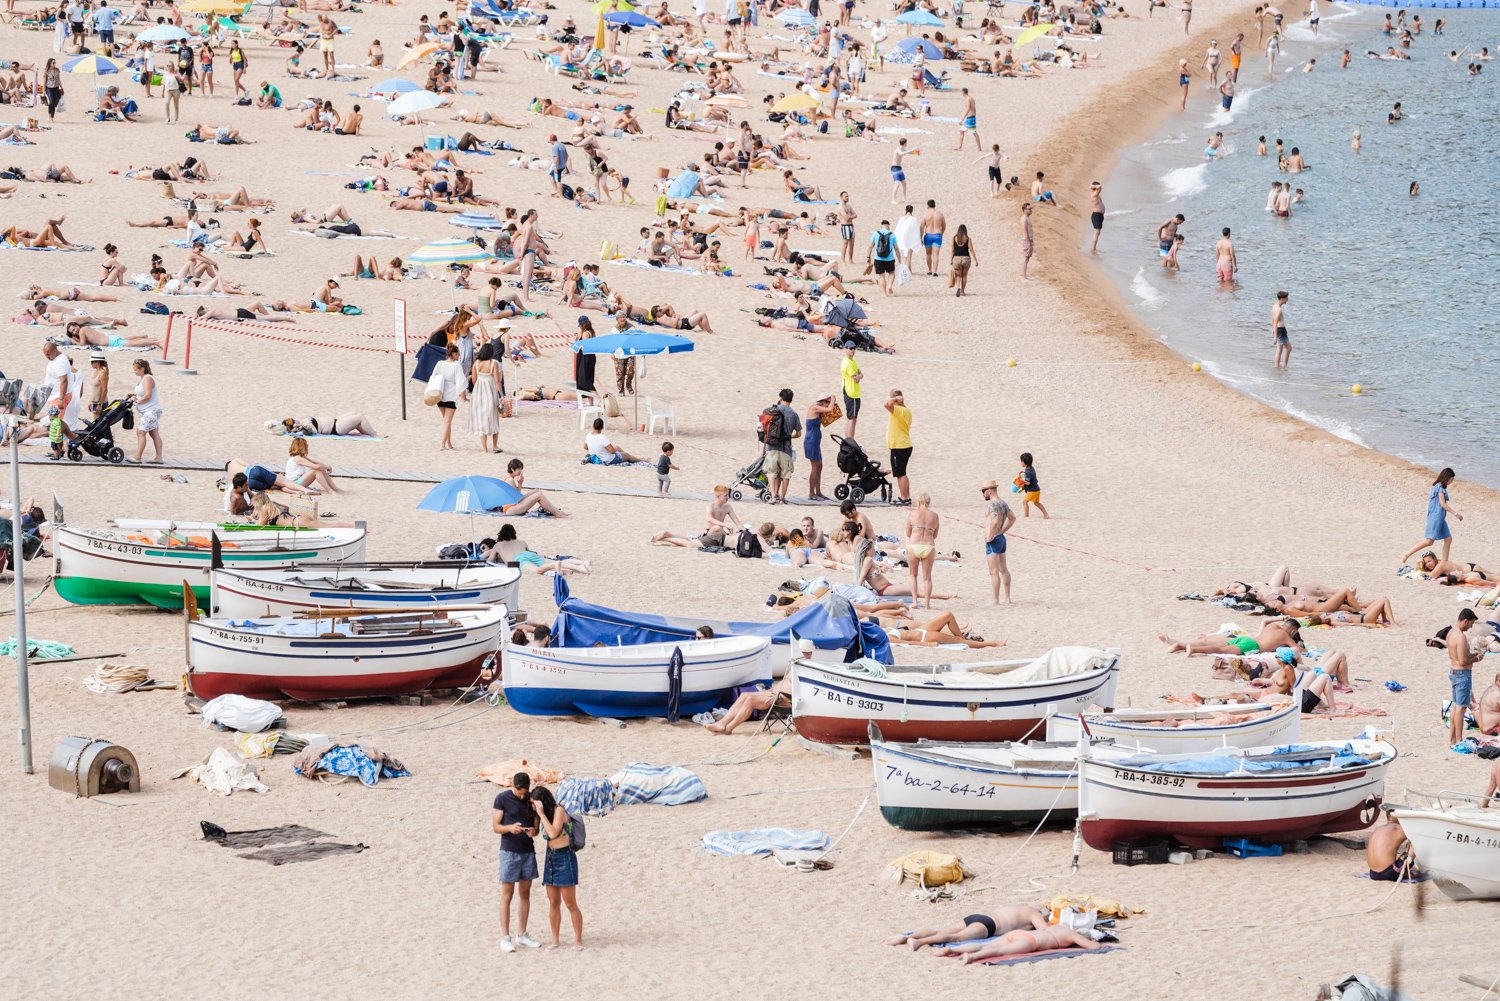 Boats and people beached along Tossa de Mar beach